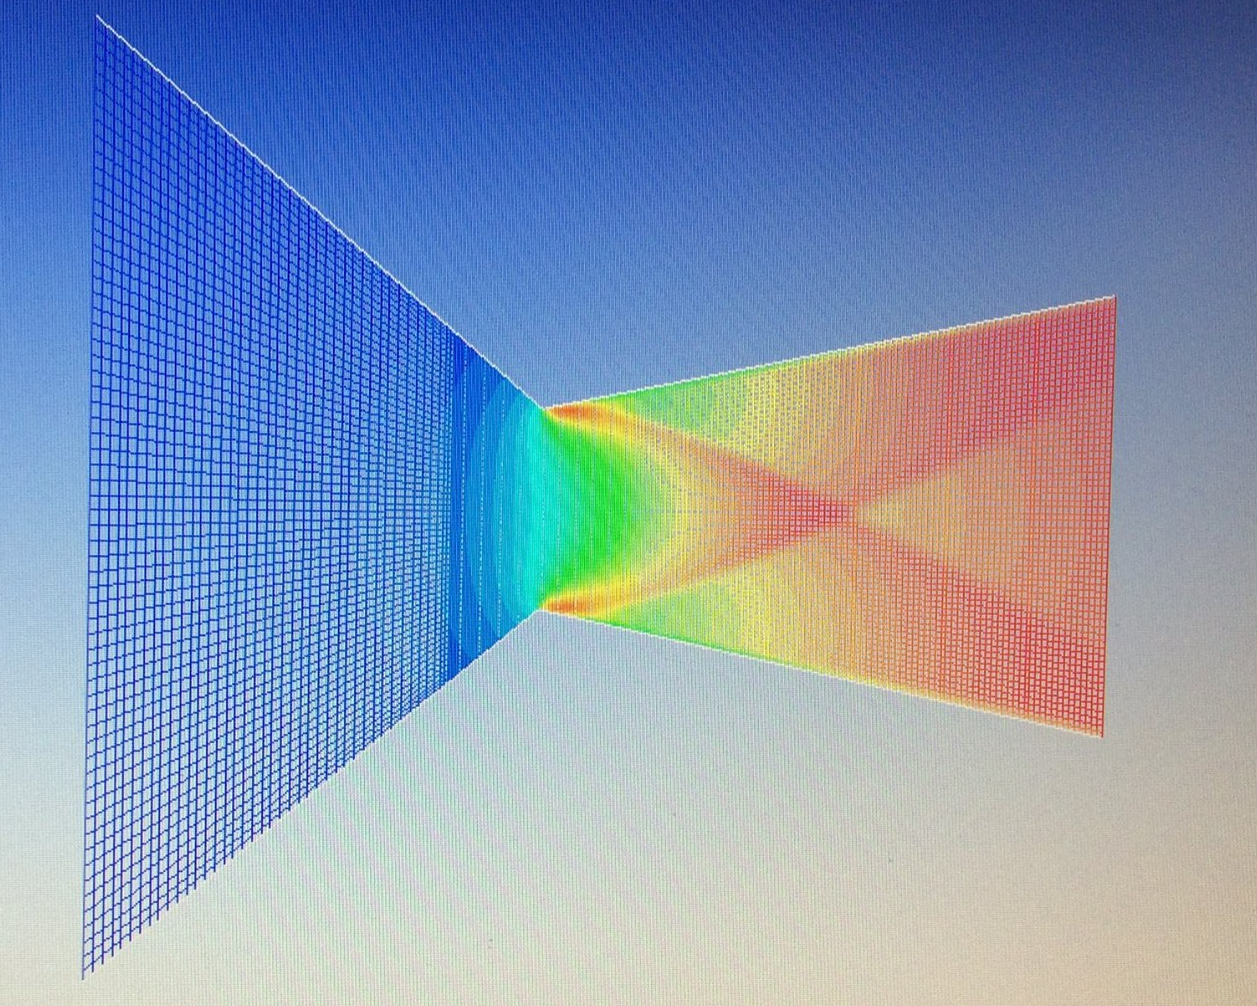 A mach number simulation through a variation of the Mark I nozzle